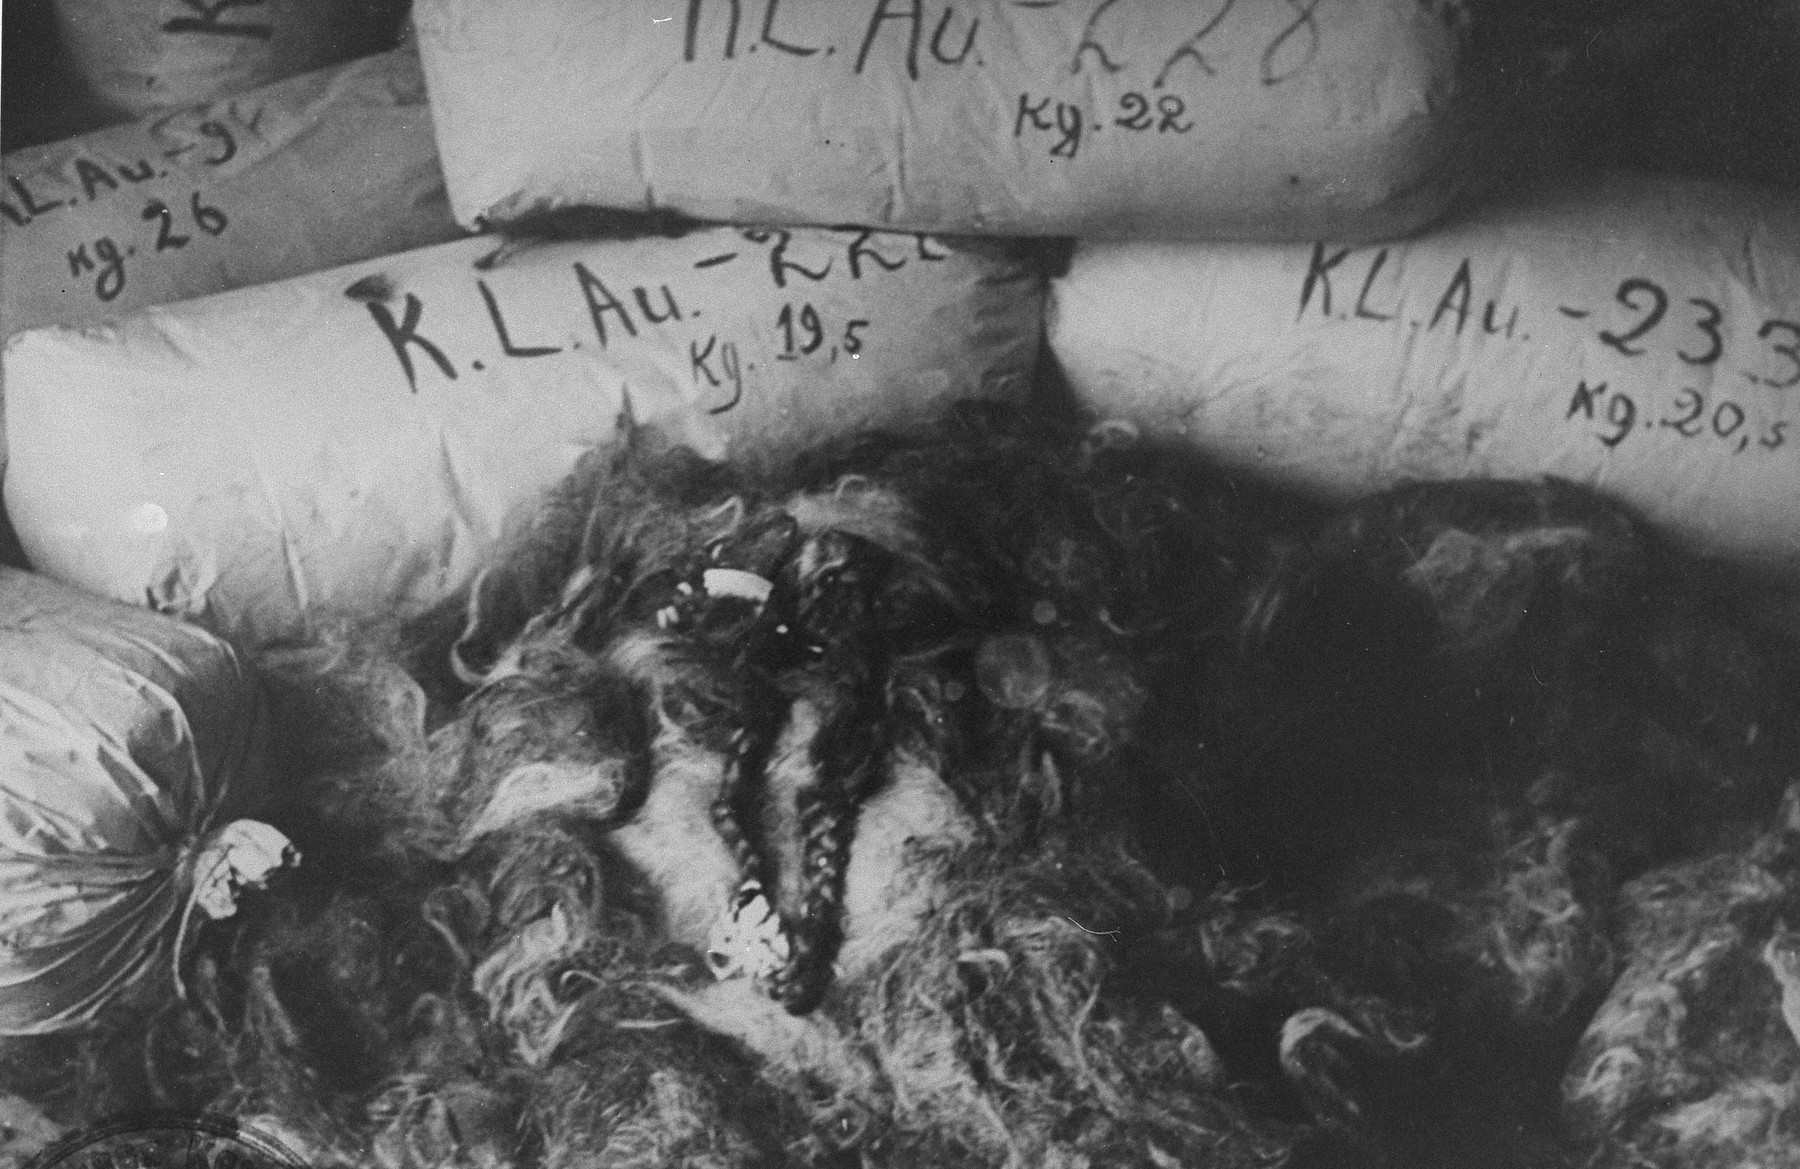 Bales of the hair of female prisoners found in the warehouses of Auschwitz at the liberation.